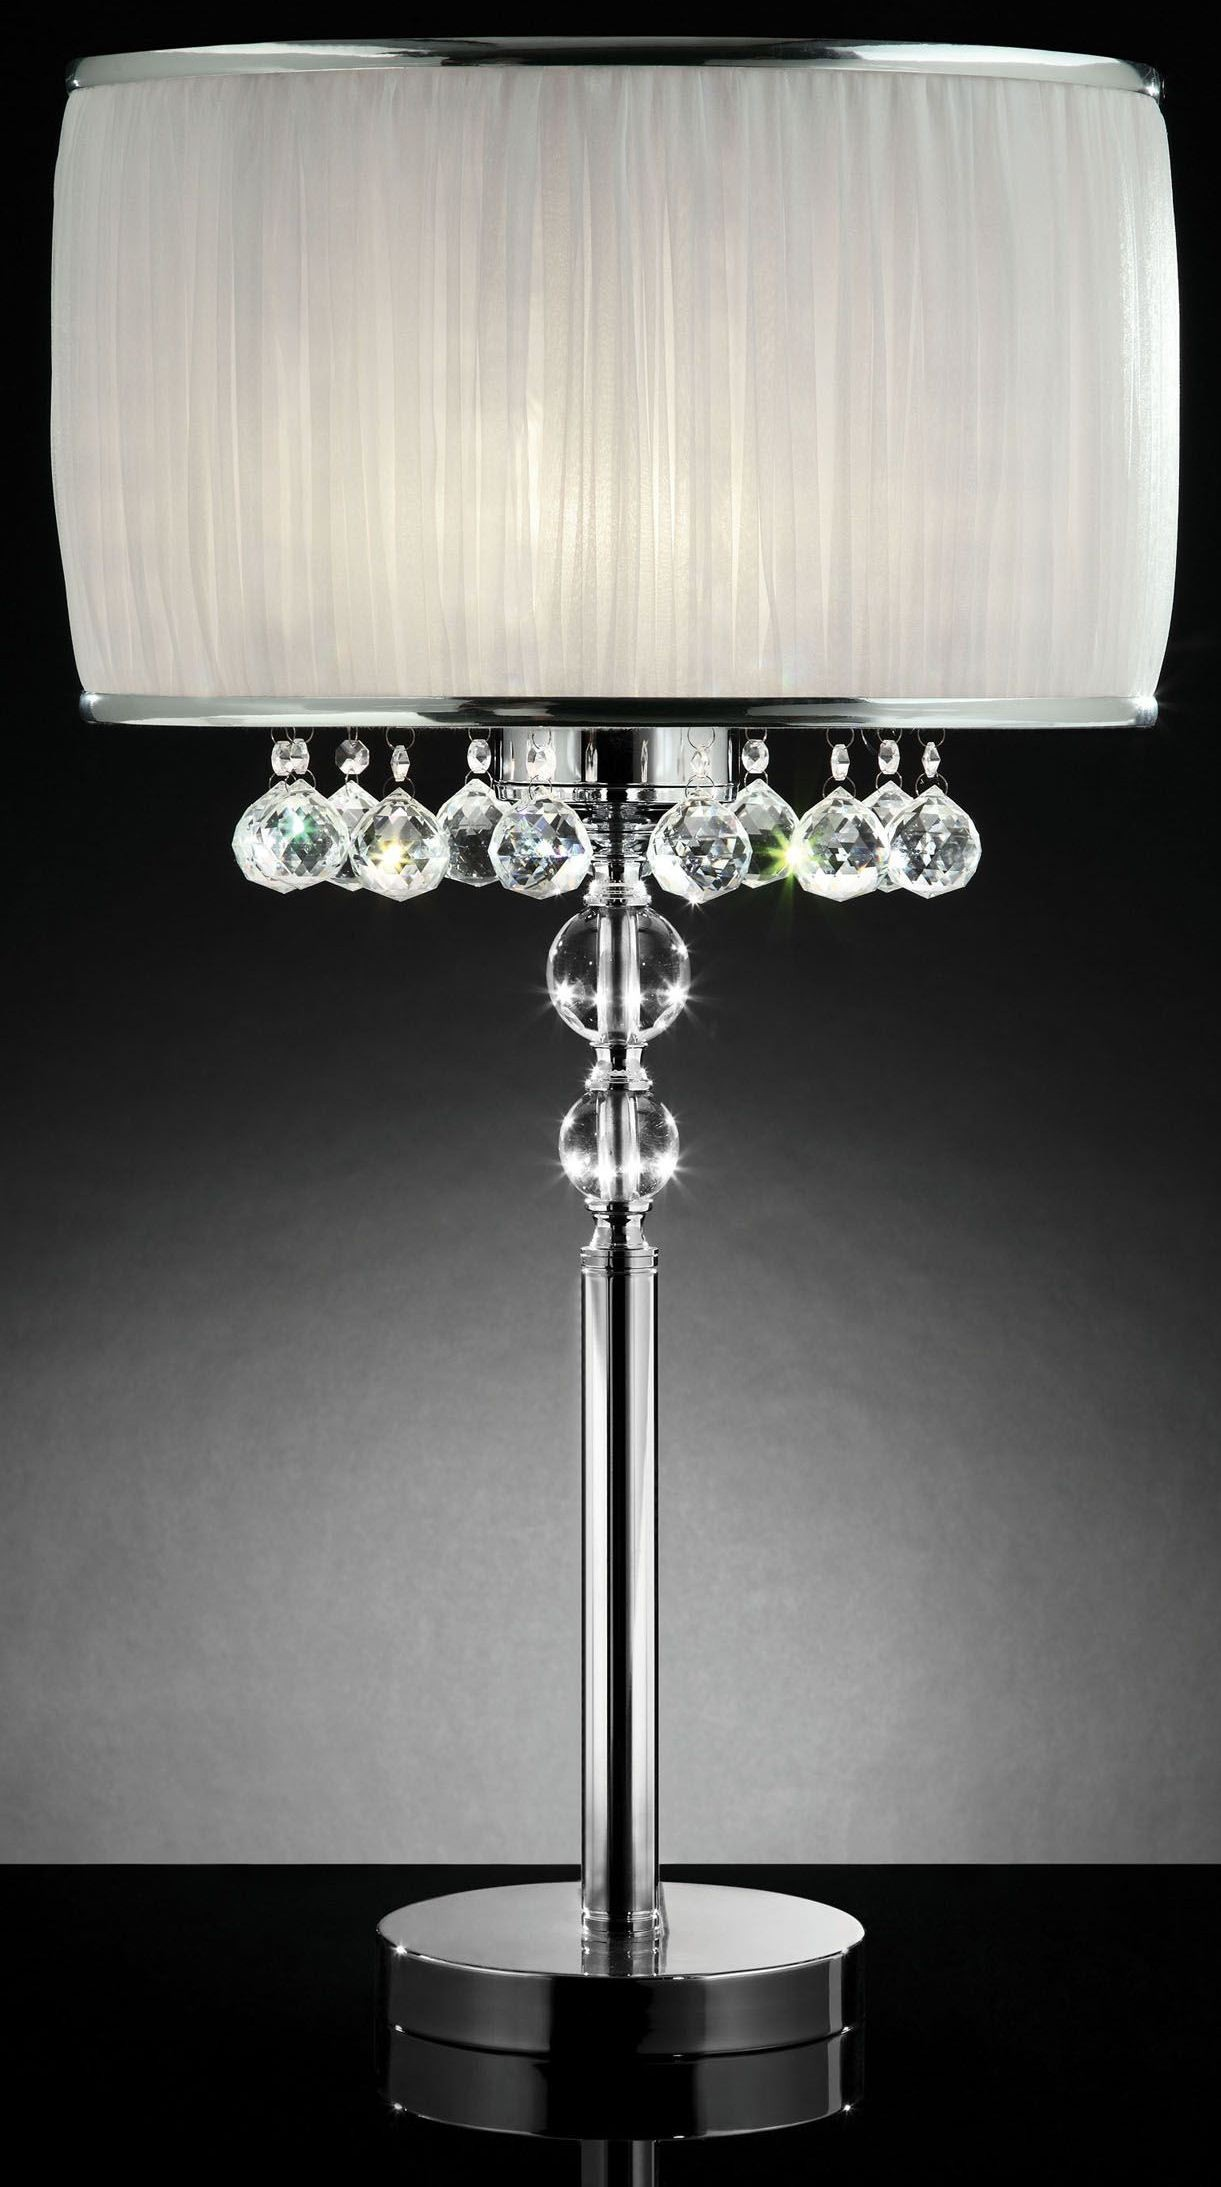 Chloe White Hanging Crystal Table Lamp From Furniture Of